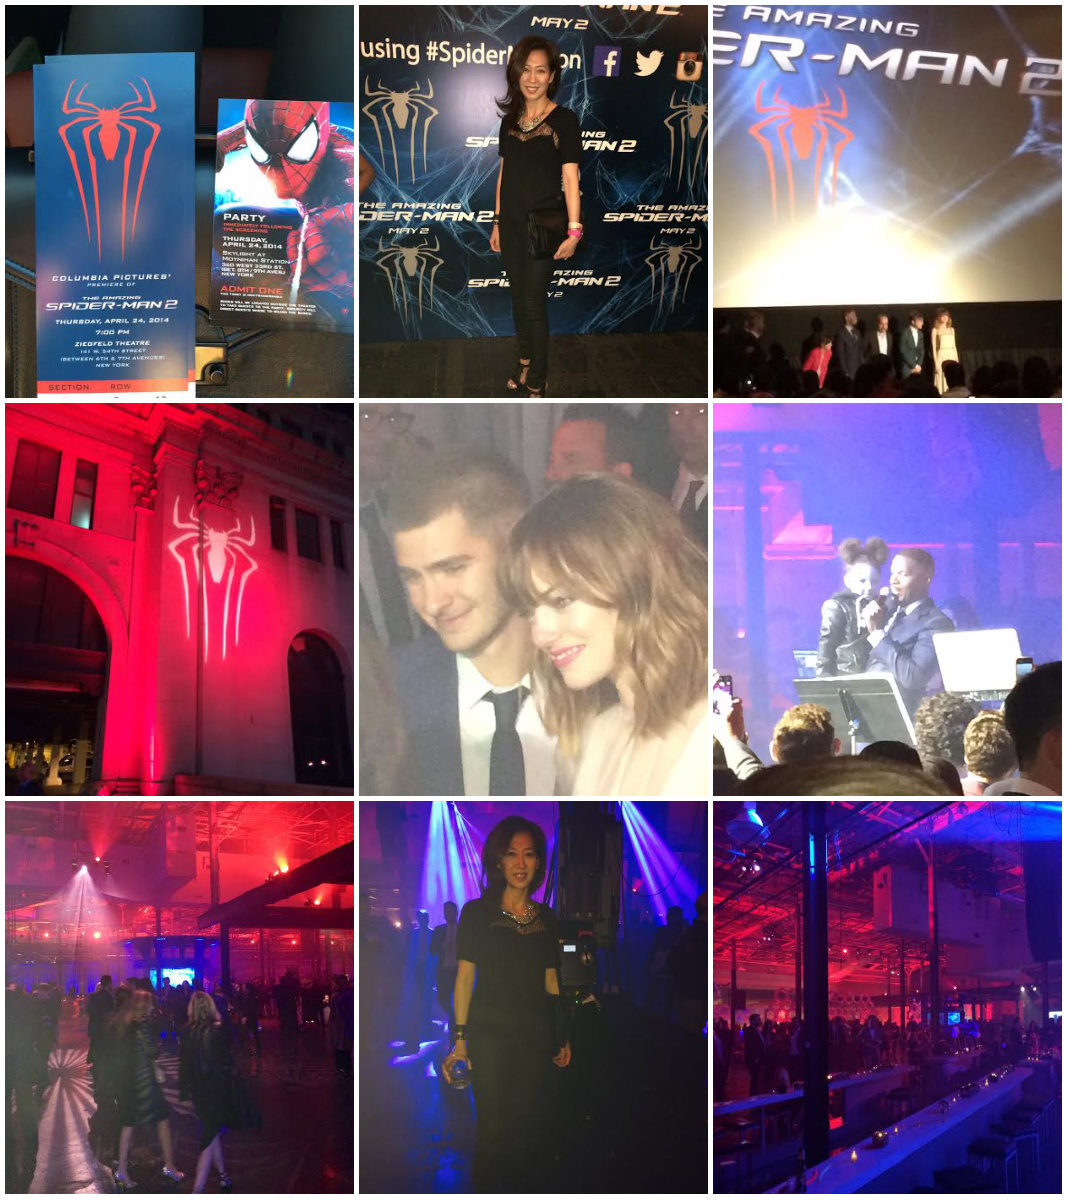 The Amazing SpiderMan 2 photo collage of movie premiere and after-party in Manhattan